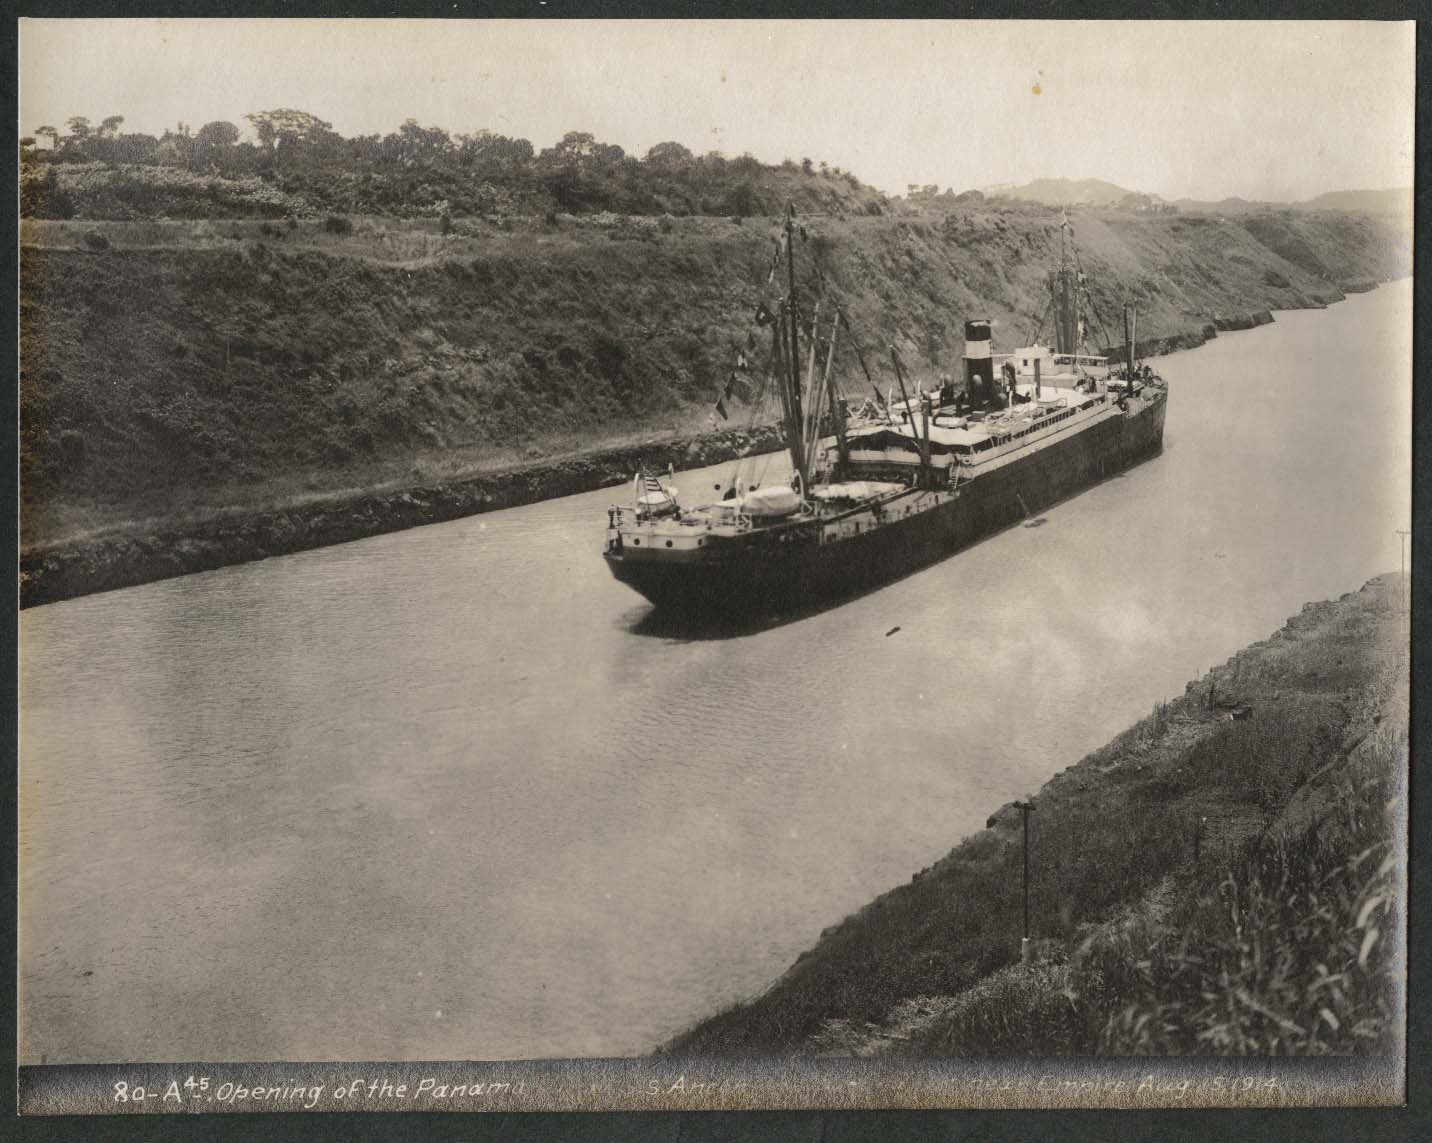 Image for Panama Canal photo 1914 Opening of canal S S Ancon at Culebra Cut near Empire